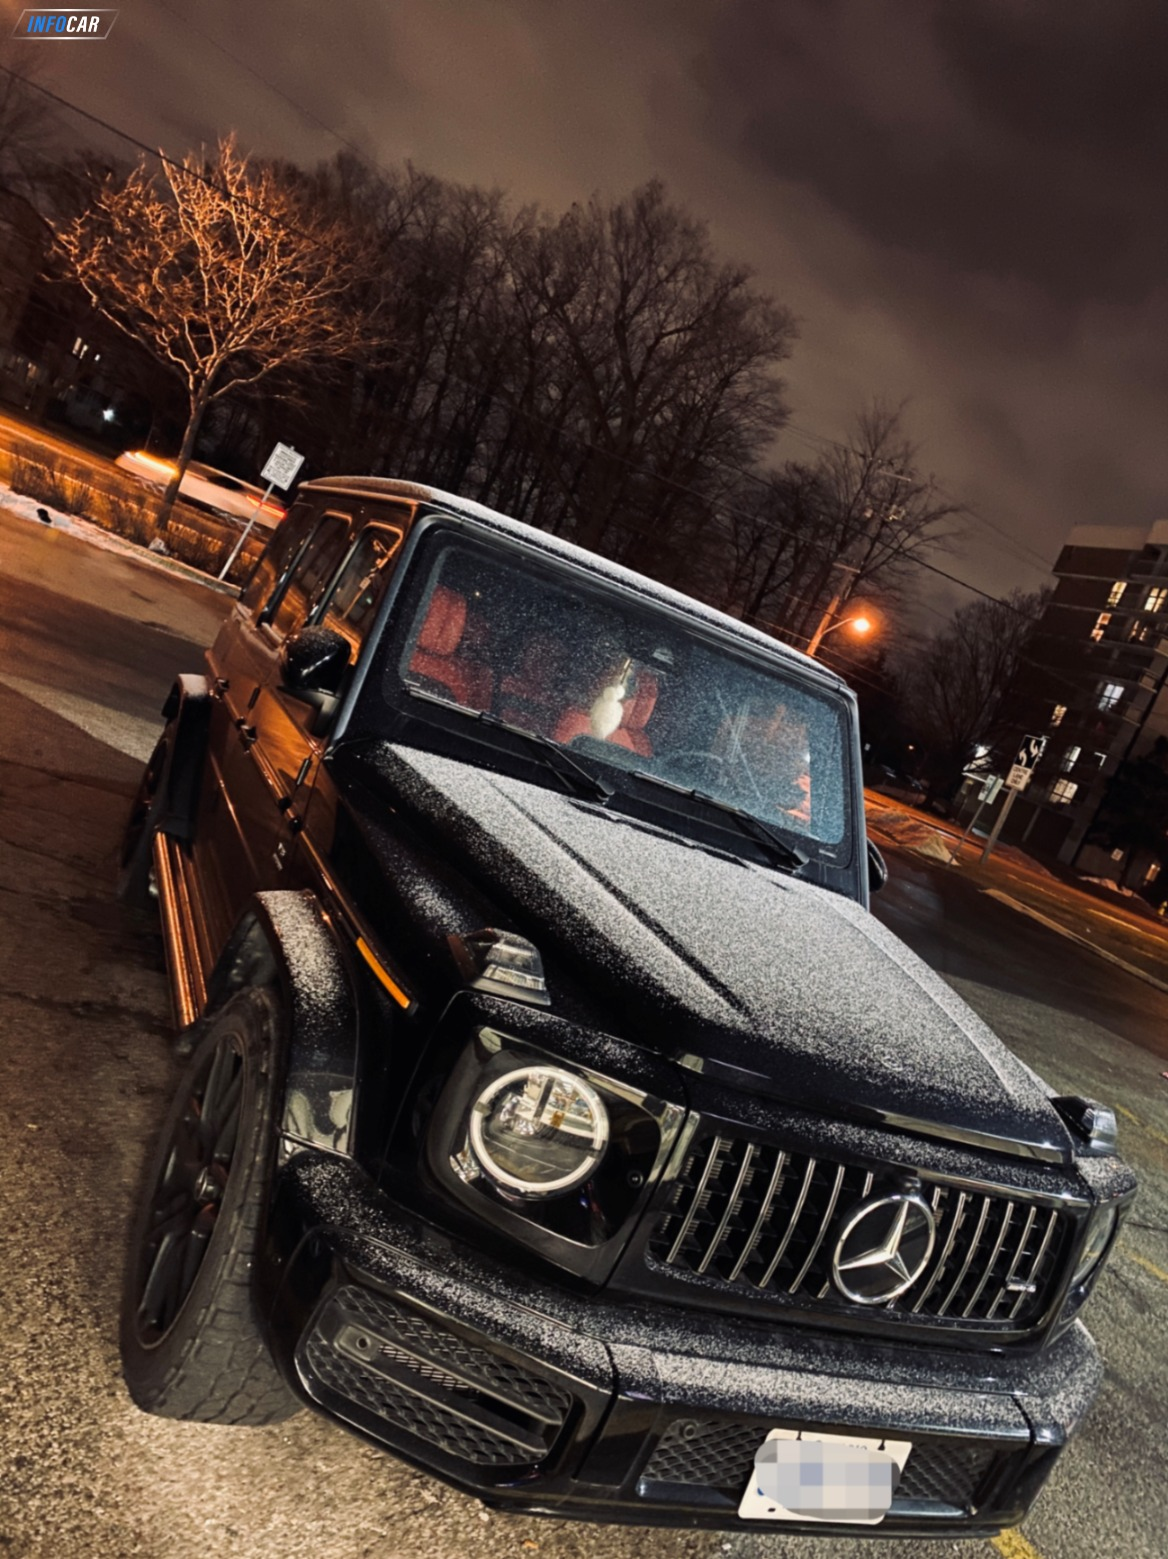 2019 Mercedes-Benz G-Class G63 - INFOCAR - Toronto's Most Comprehensive New and Used Auto Trading Platform